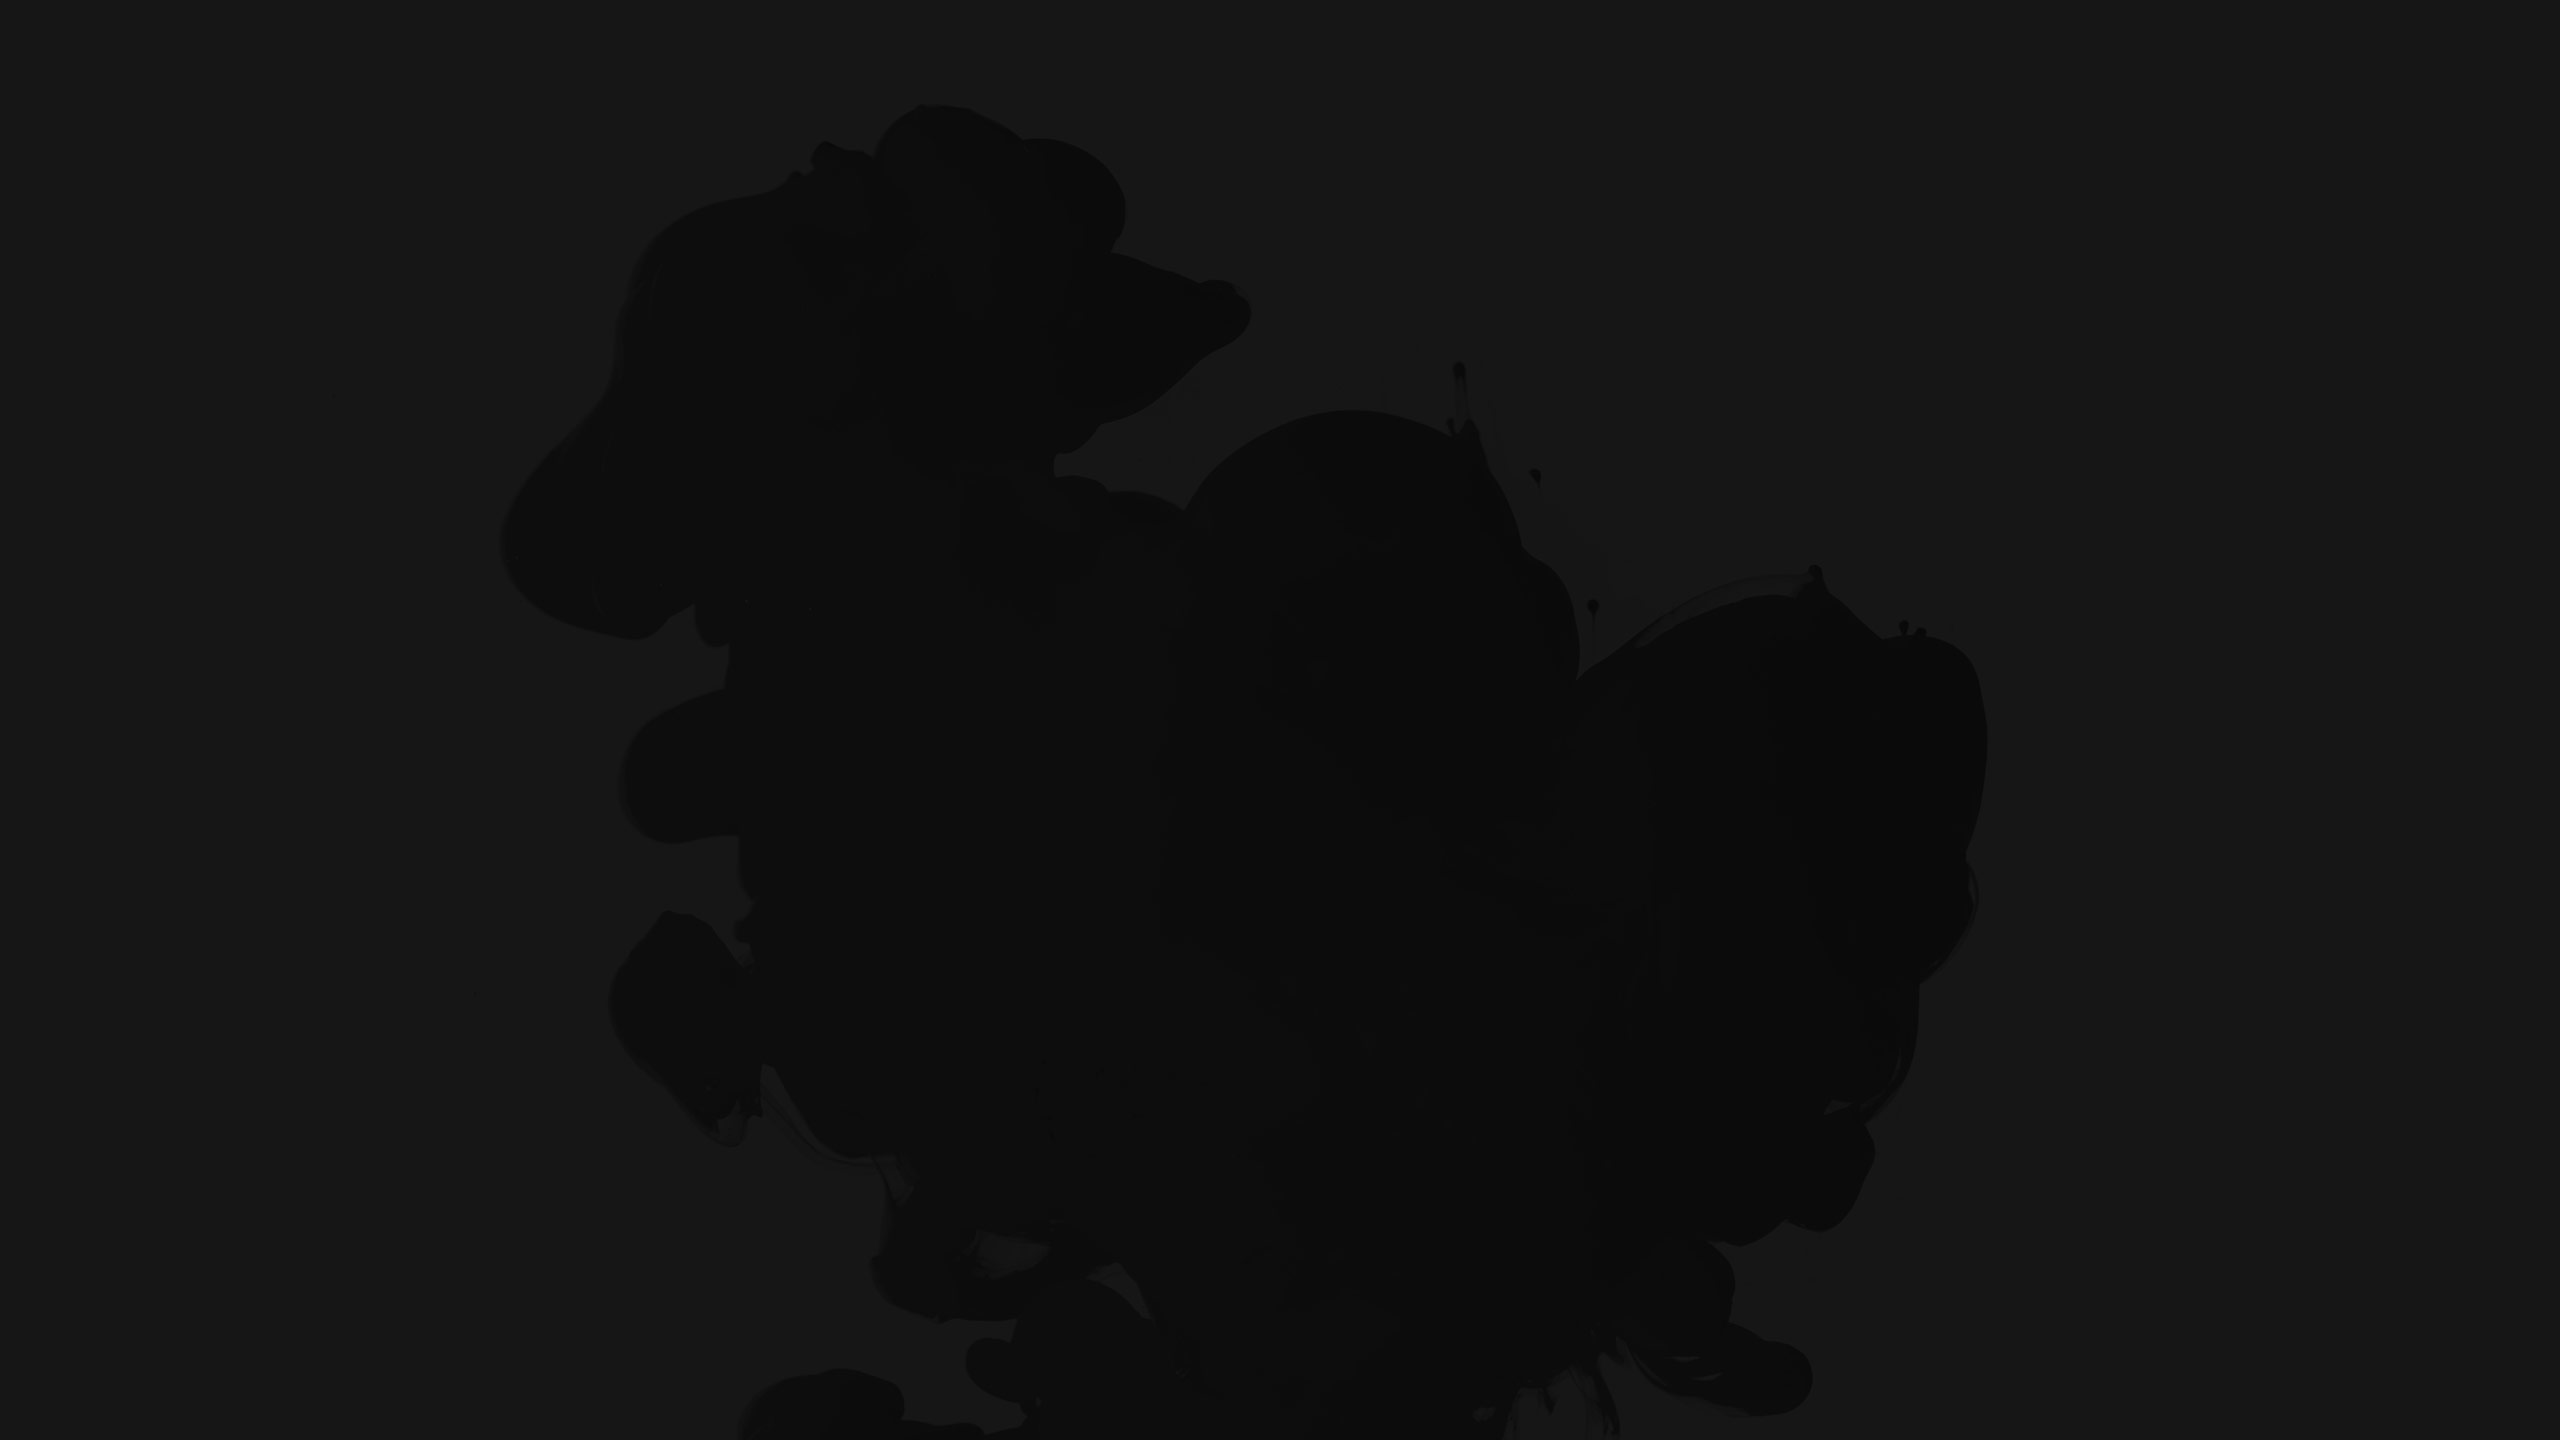 Black Ink Cloud | Background Image | Graphic Design Brisbane